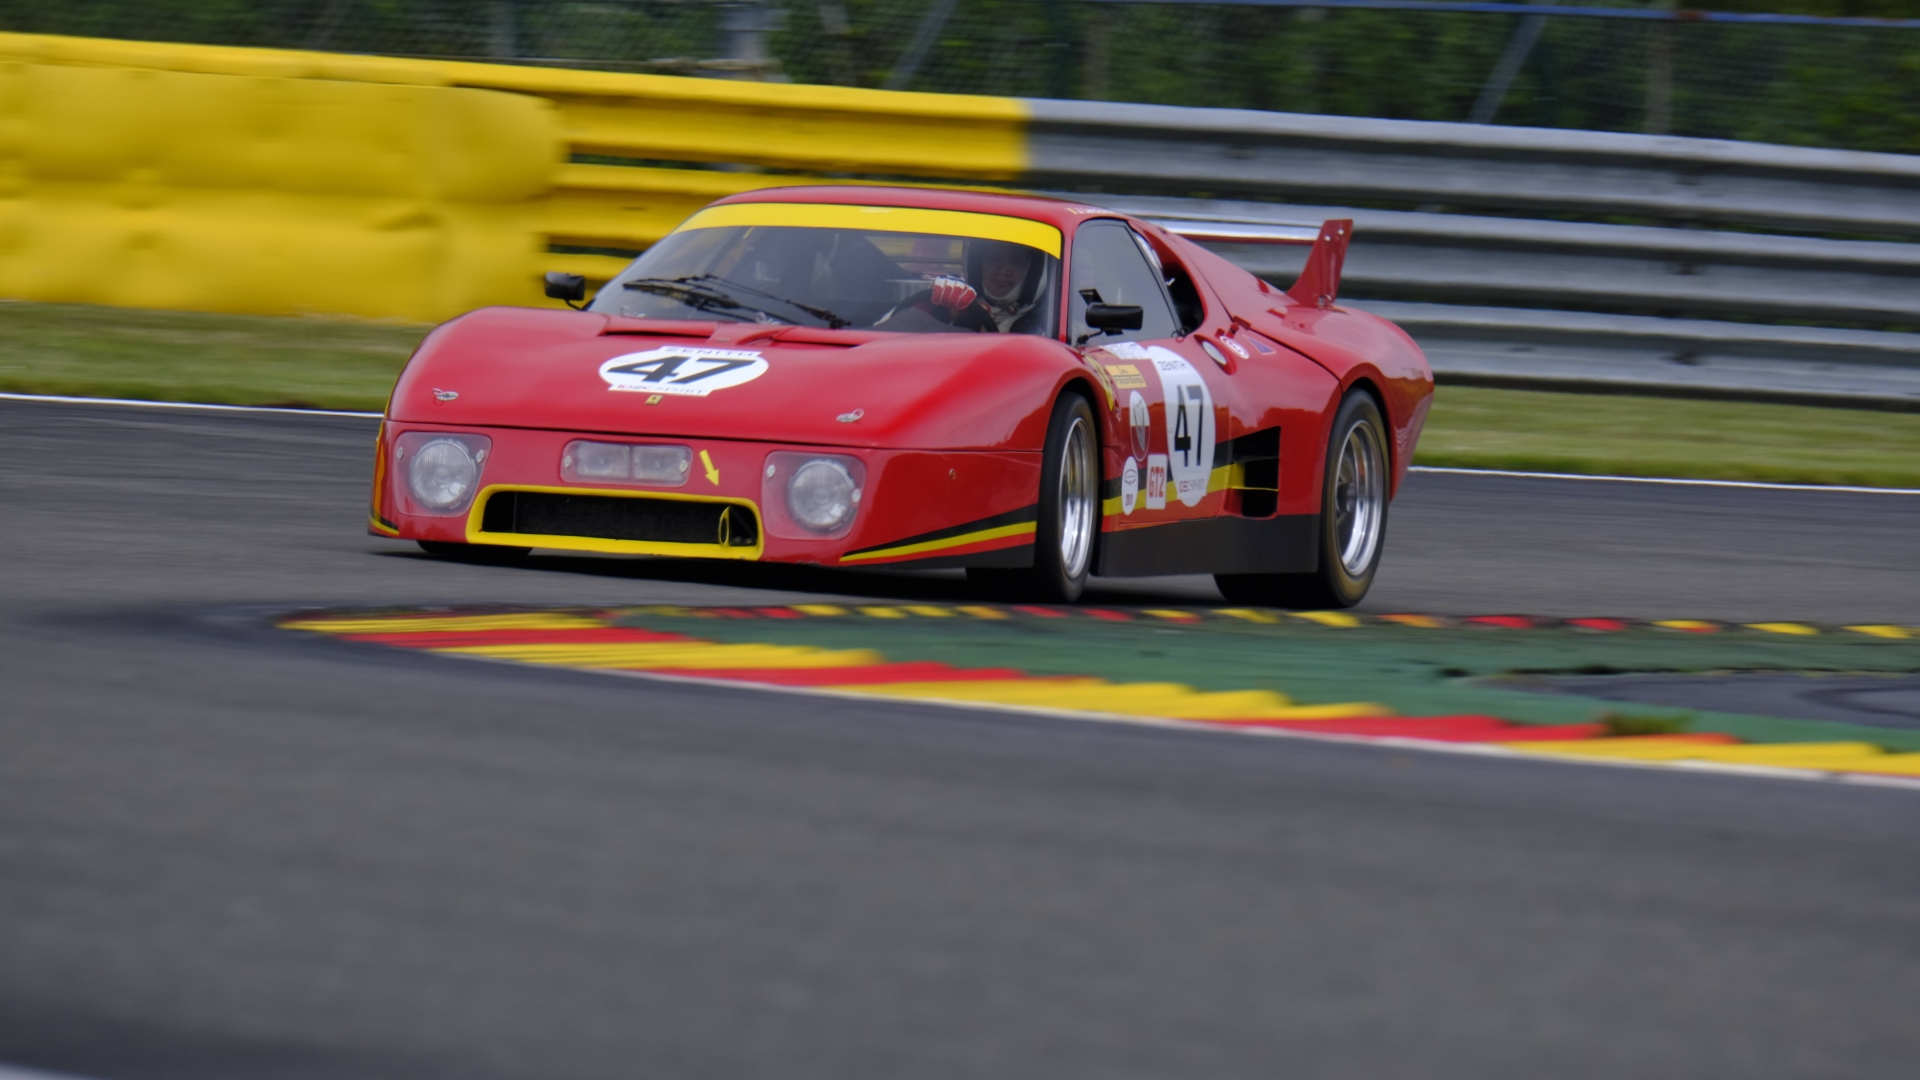 Gipimotor enjoys successful home Peter Auto race in Spa-Classic, in which it fielded 16 cars · Gipimotor